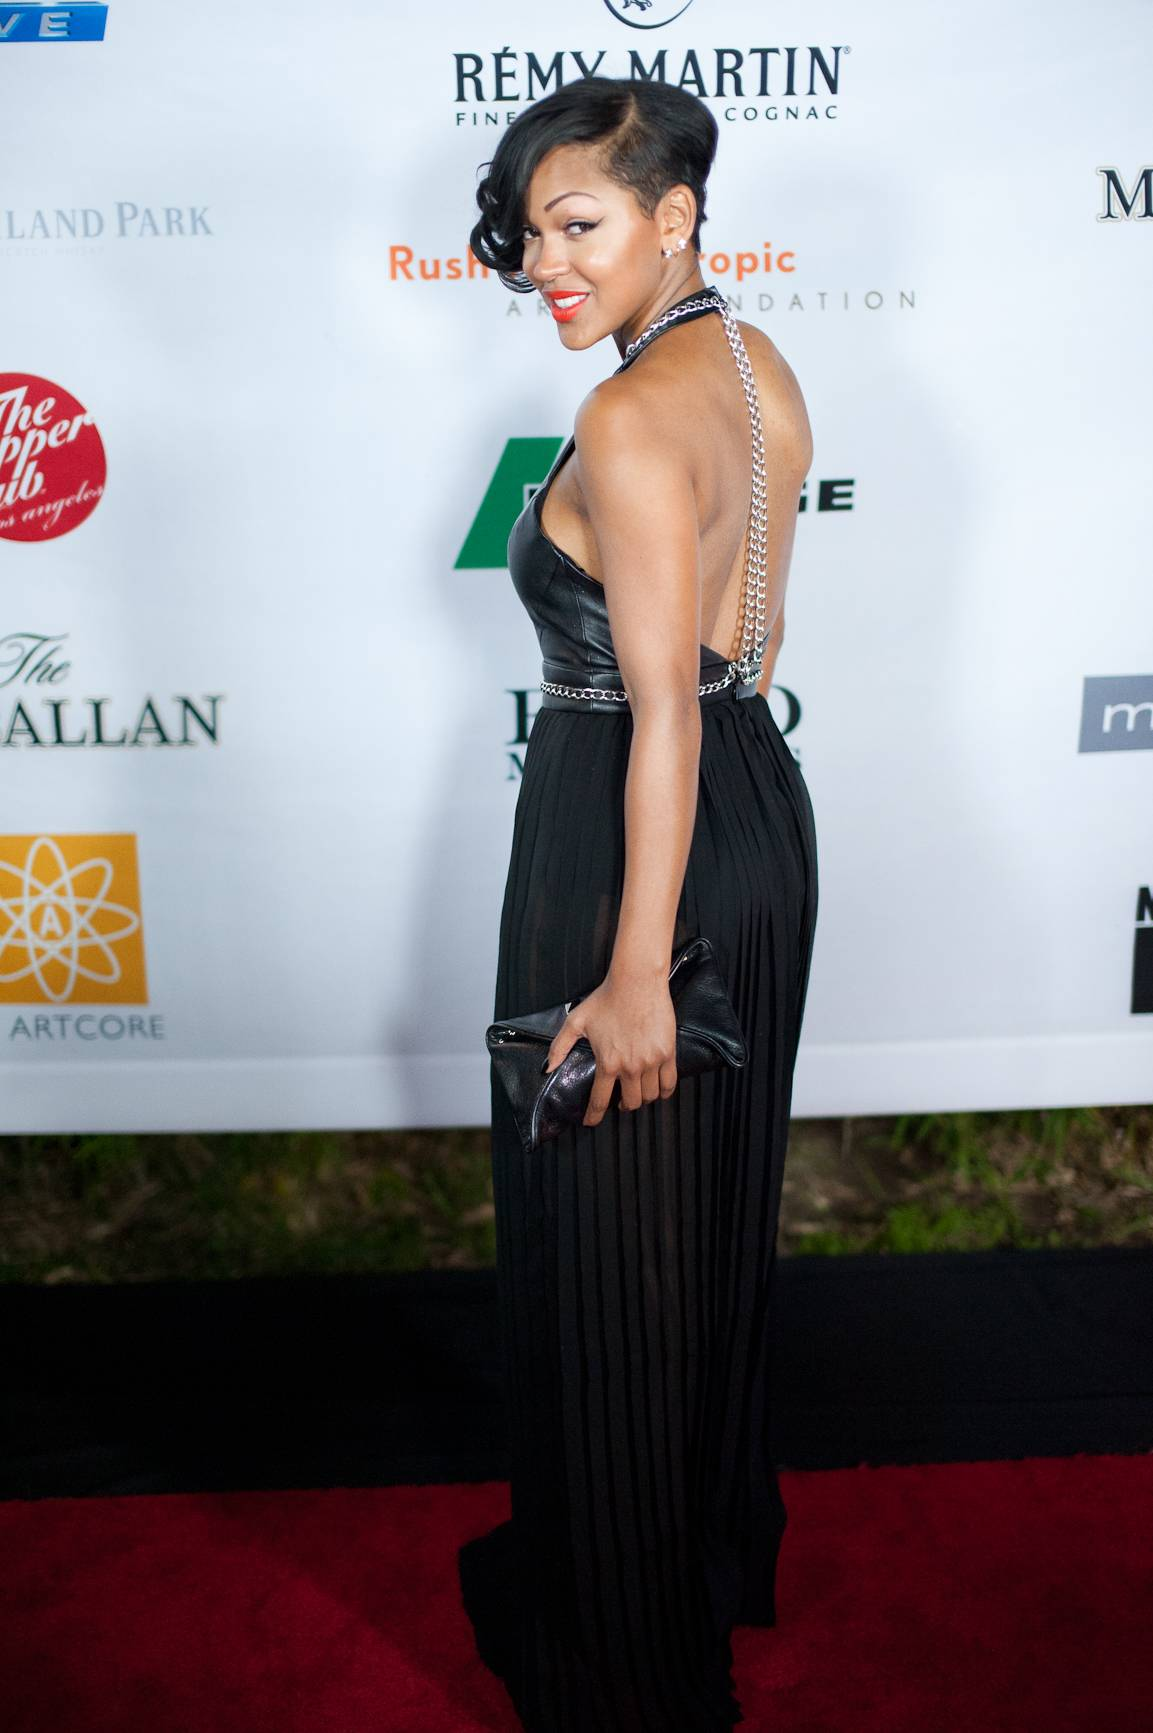 Event: Ubuntu Charity Benefit With Meagan Good And Brett Ratner 25